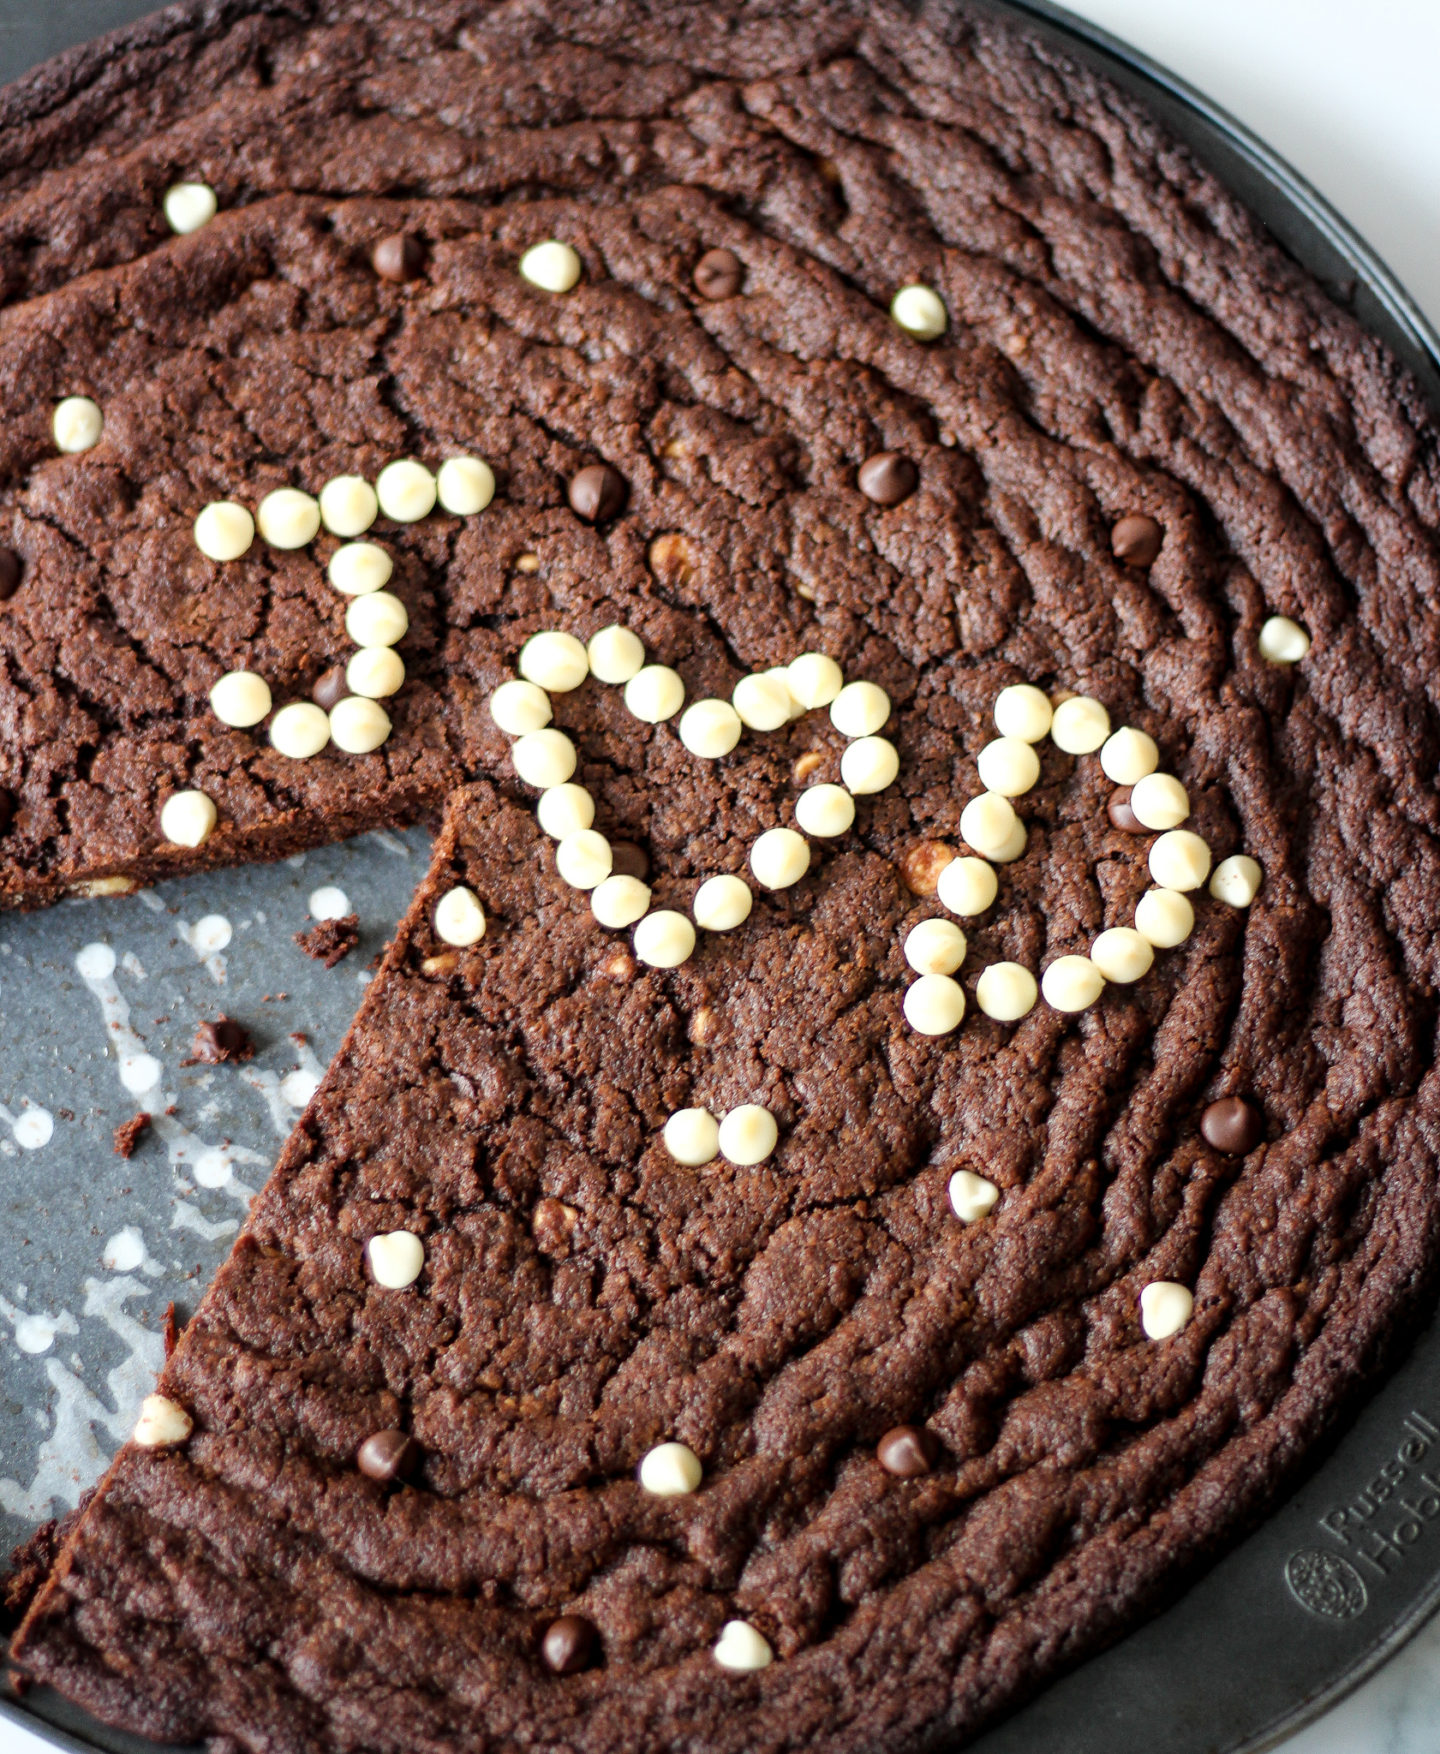 sliced triple chocolate chip cookie pizza with white chocolate chip initials to decorate